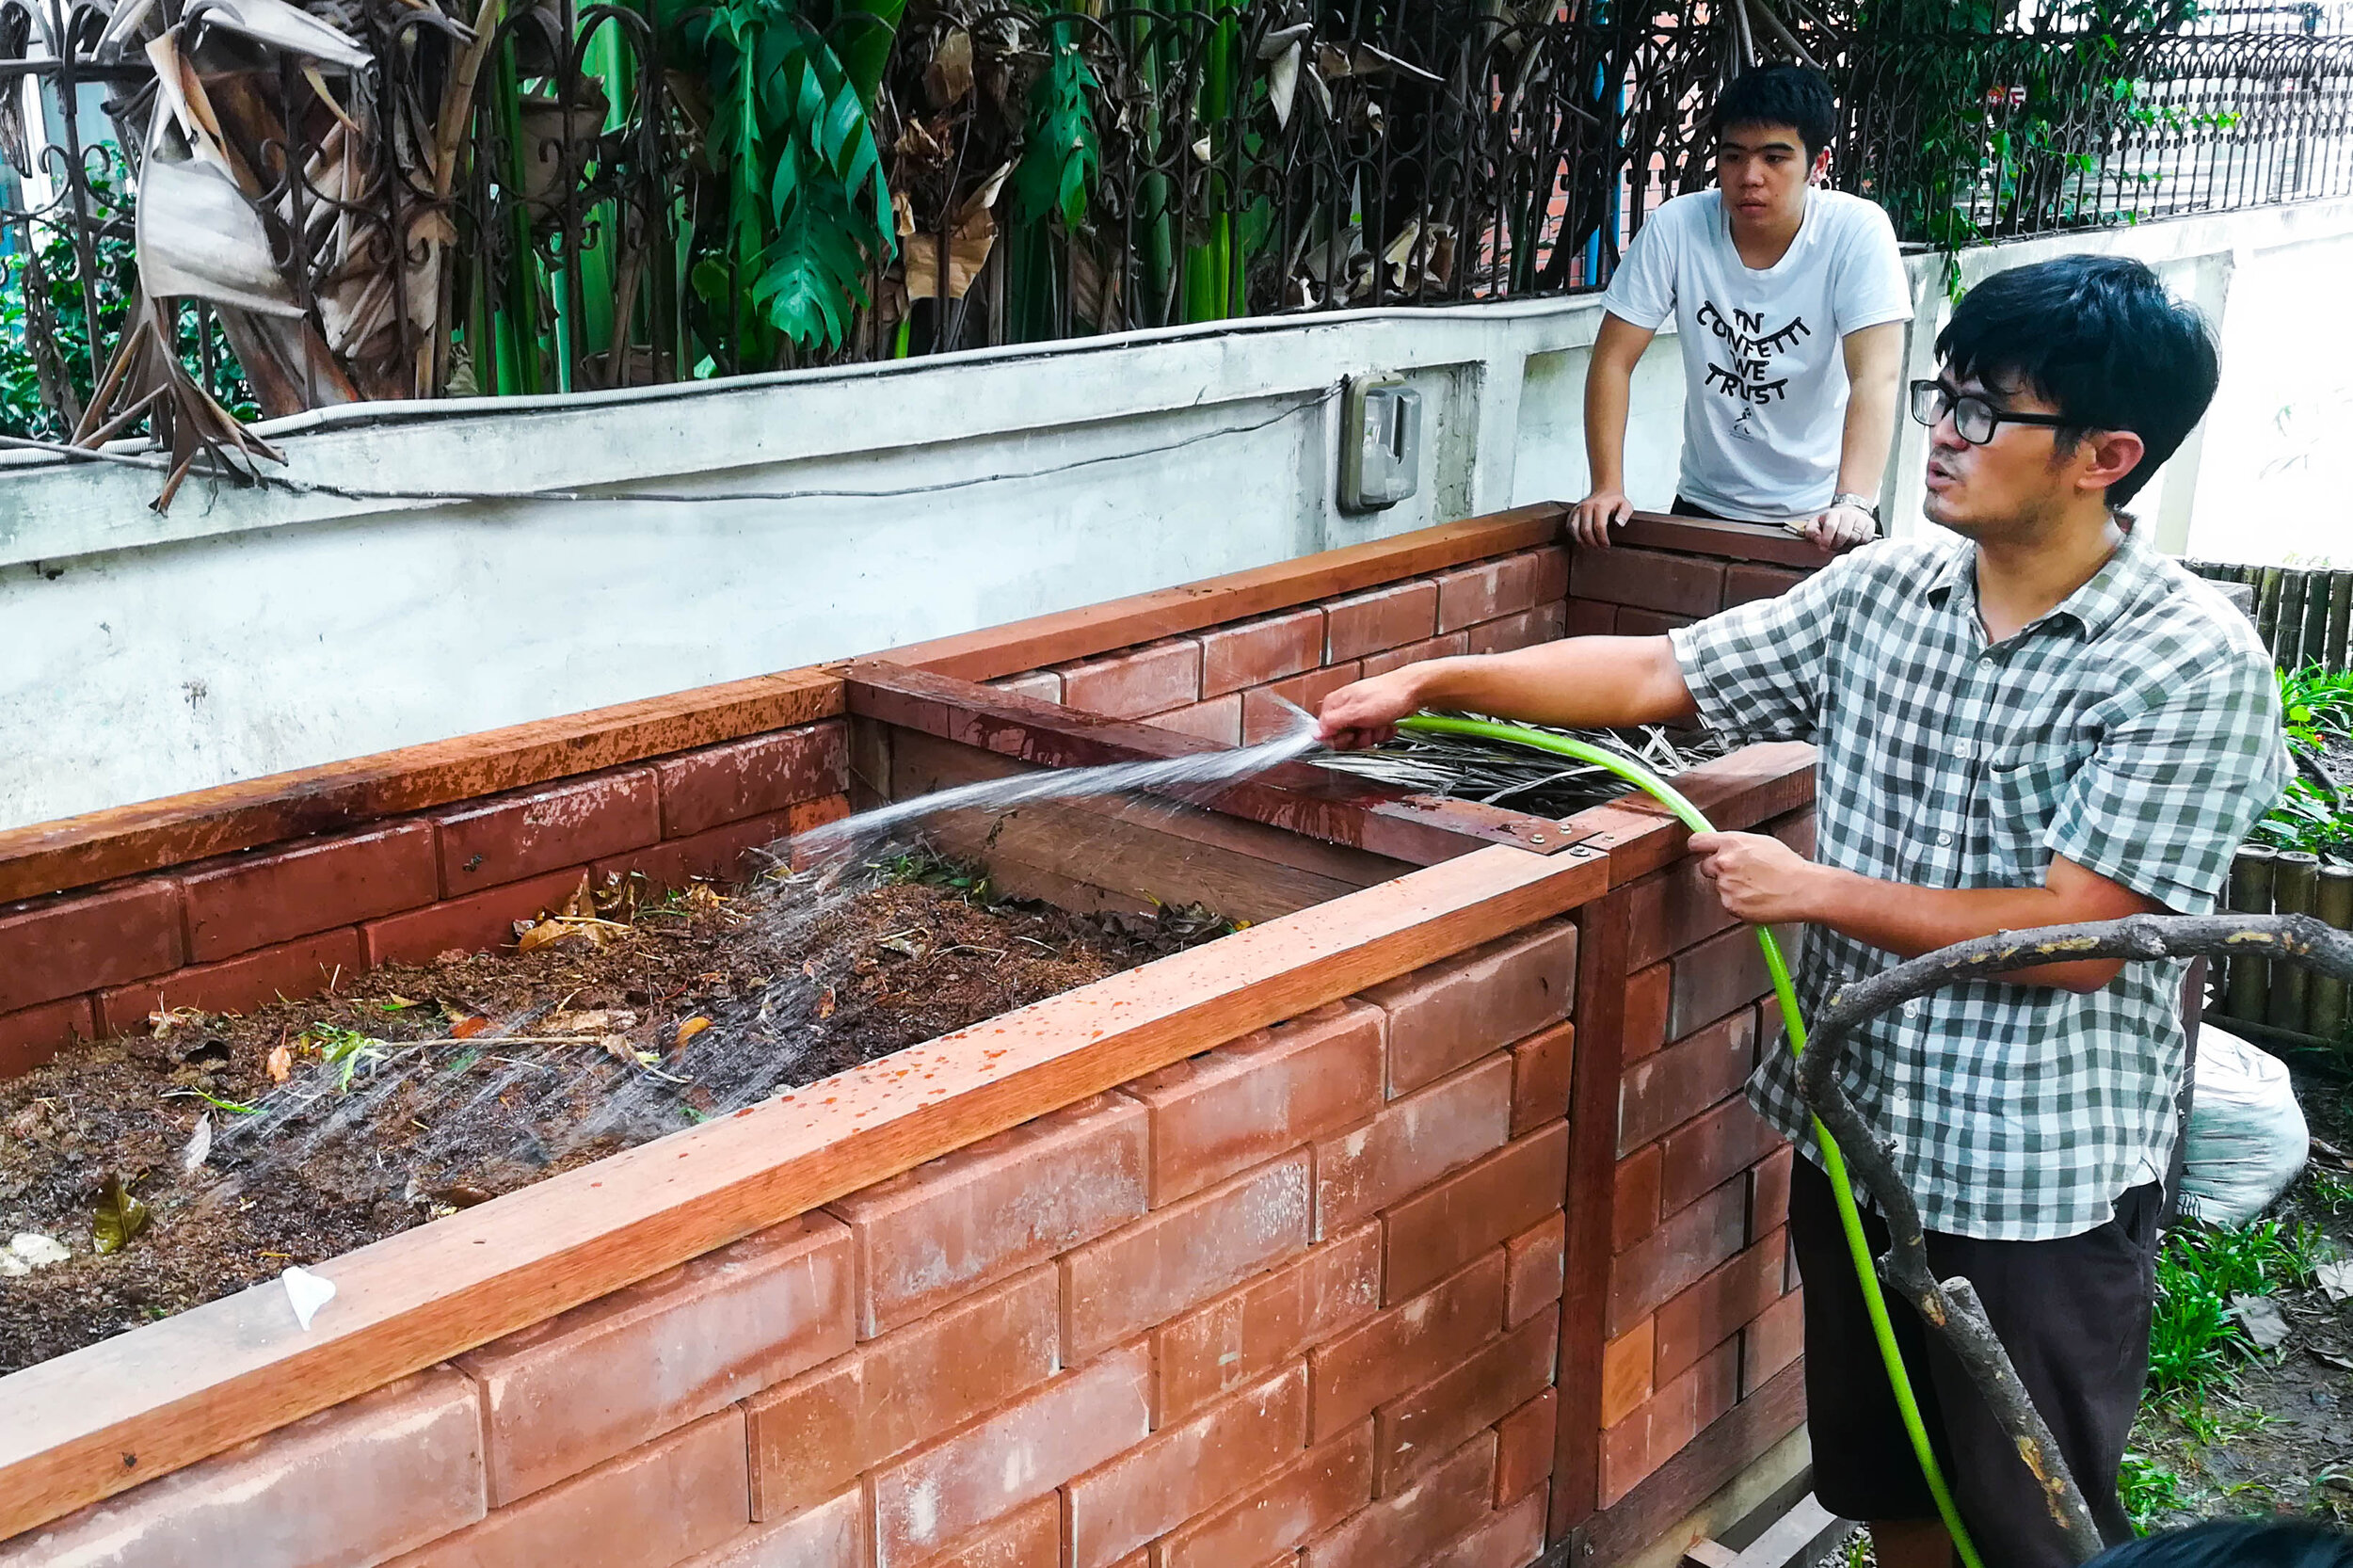 Bo.lan Edible Garden: Sustainable farming workshop run by Nakorn Limpacuptathavon (Prince) and Sunatthalinee Sinprom (Jig) in October 2019 - learning how to compost